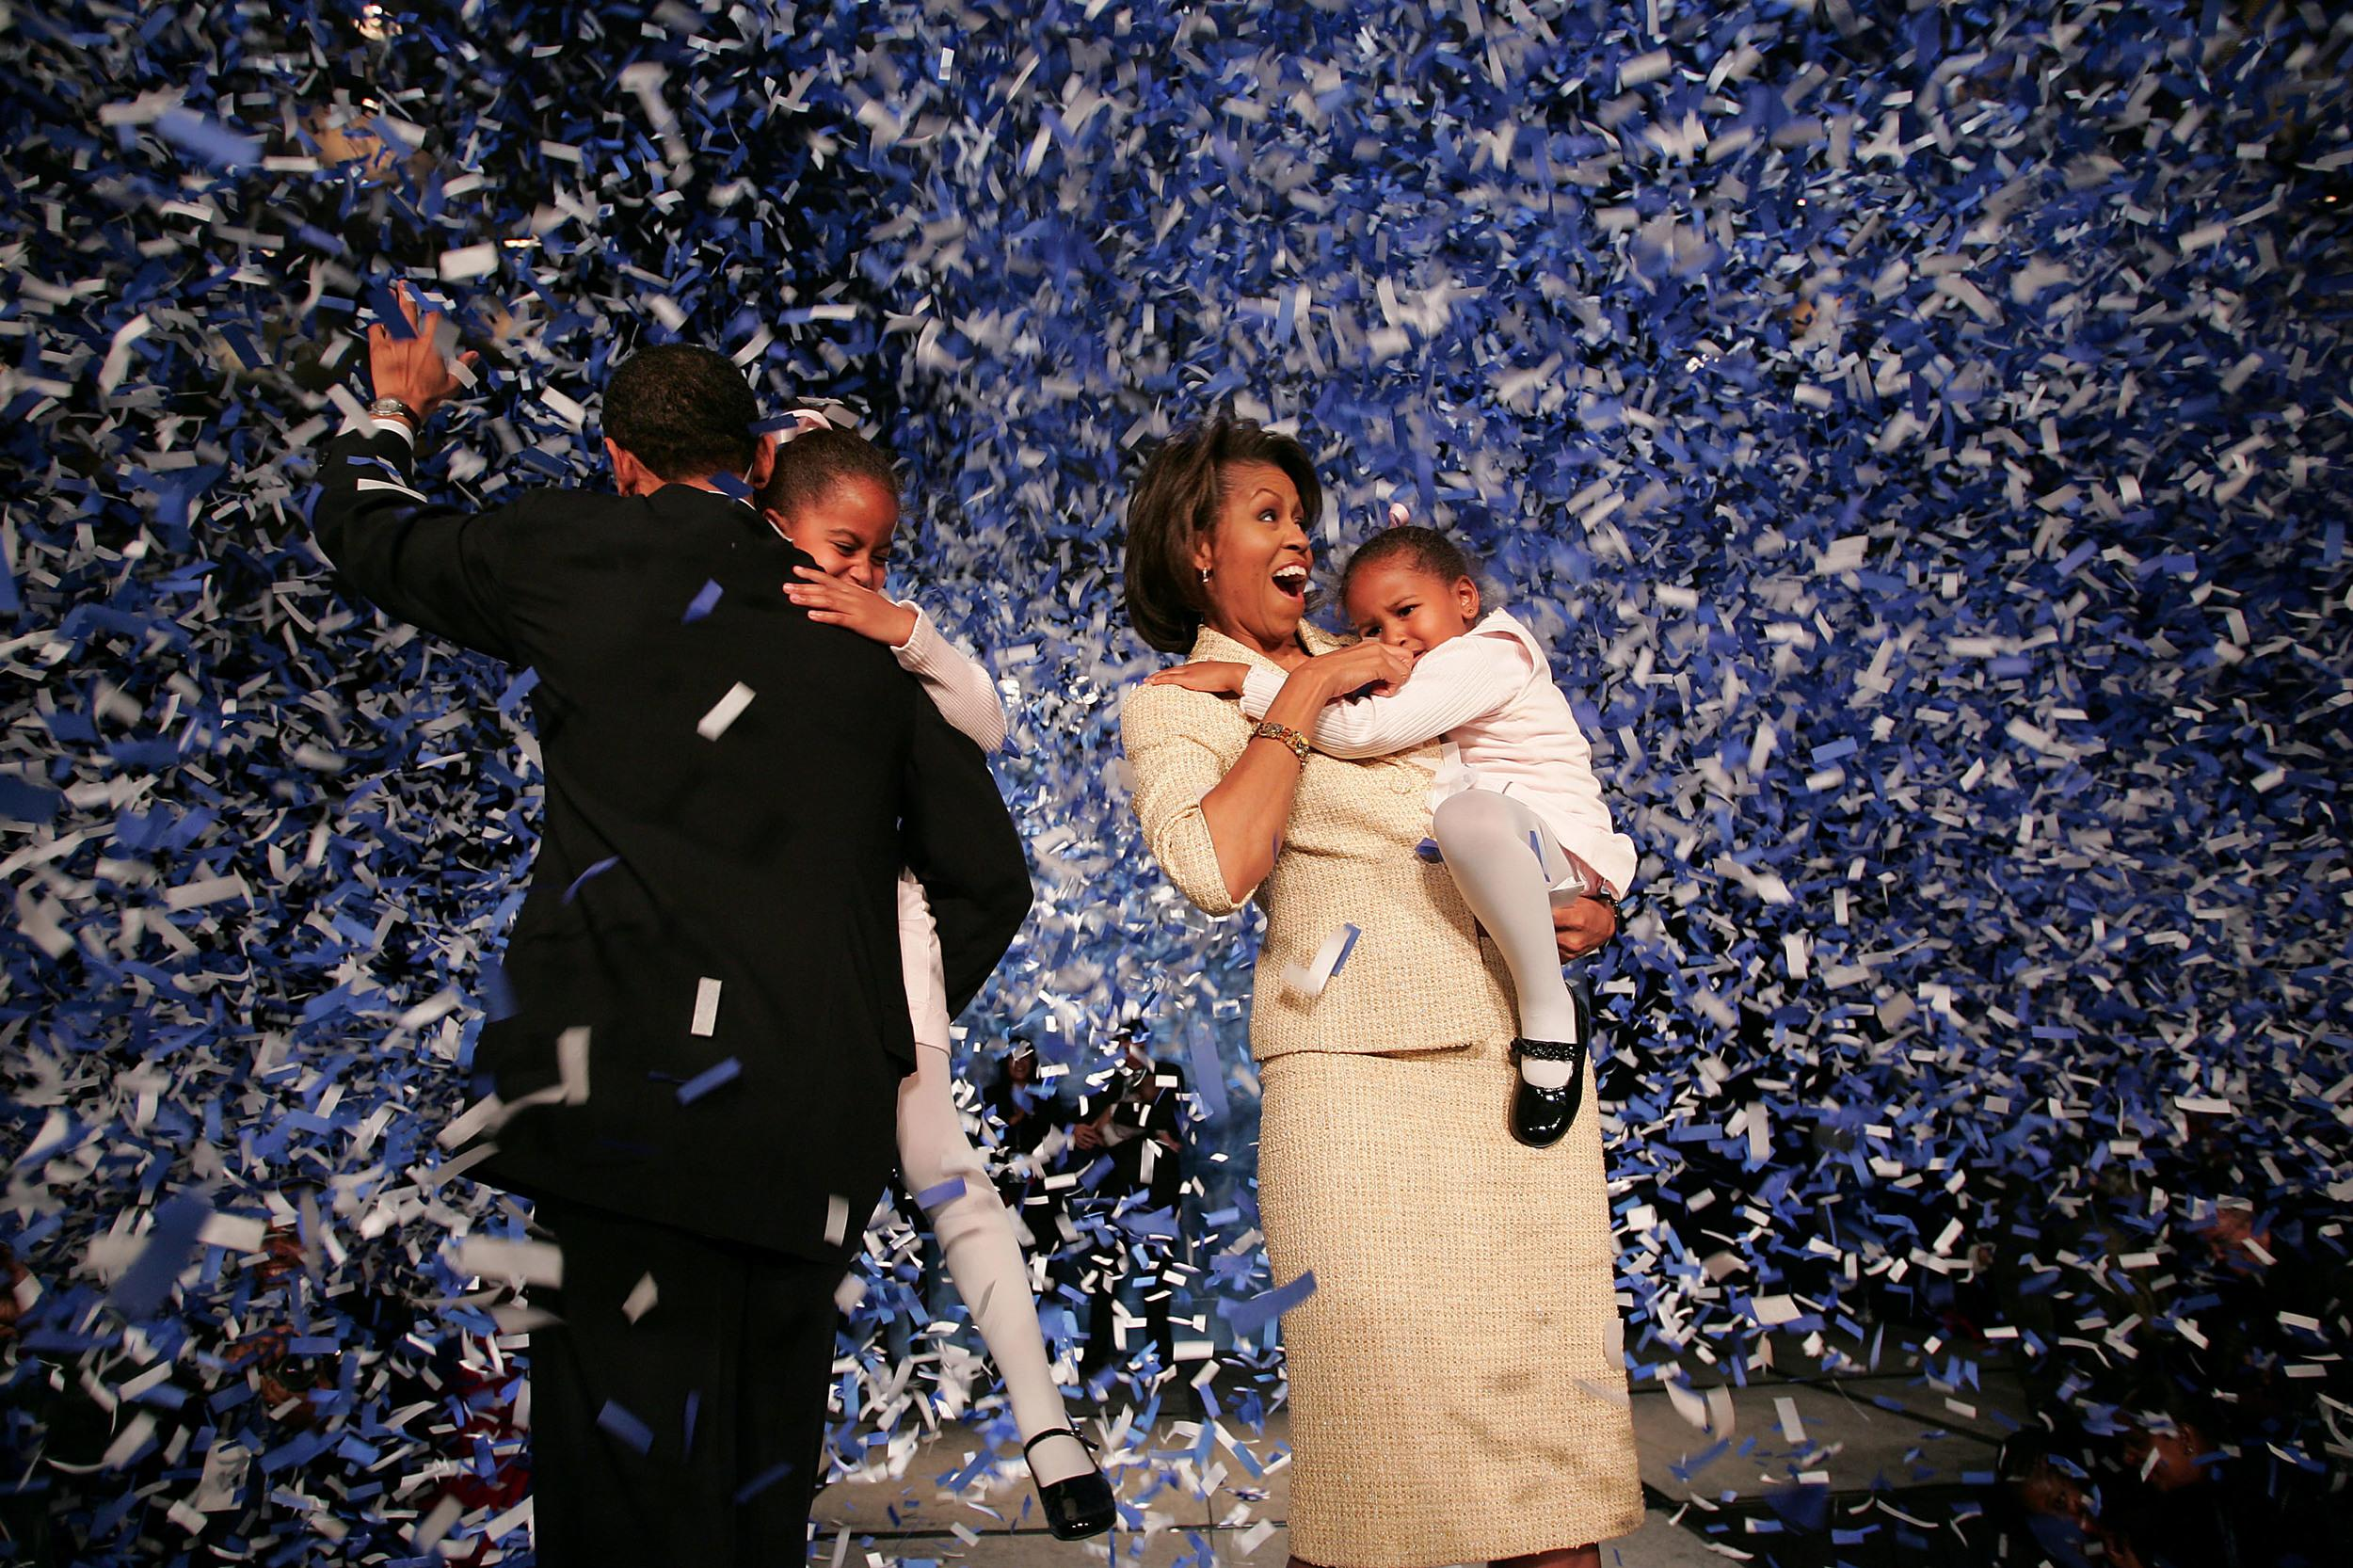 <p>Candidate for the U.S. Senate Barack Obama (D-IL) (L) holding his daughter Malia with wife Michelle and youngest daughter Sasha (R) celebrate his victory with supporters over Repulican rival Alan Keyes November 2, 2004 in Chicago, Illinois. Obama was expected to easily defeat Keyes in this first ever senate race featuring two major-party African-American candidates.</p>  <p>(Photo by Scott Olson/Getty Images)</p>